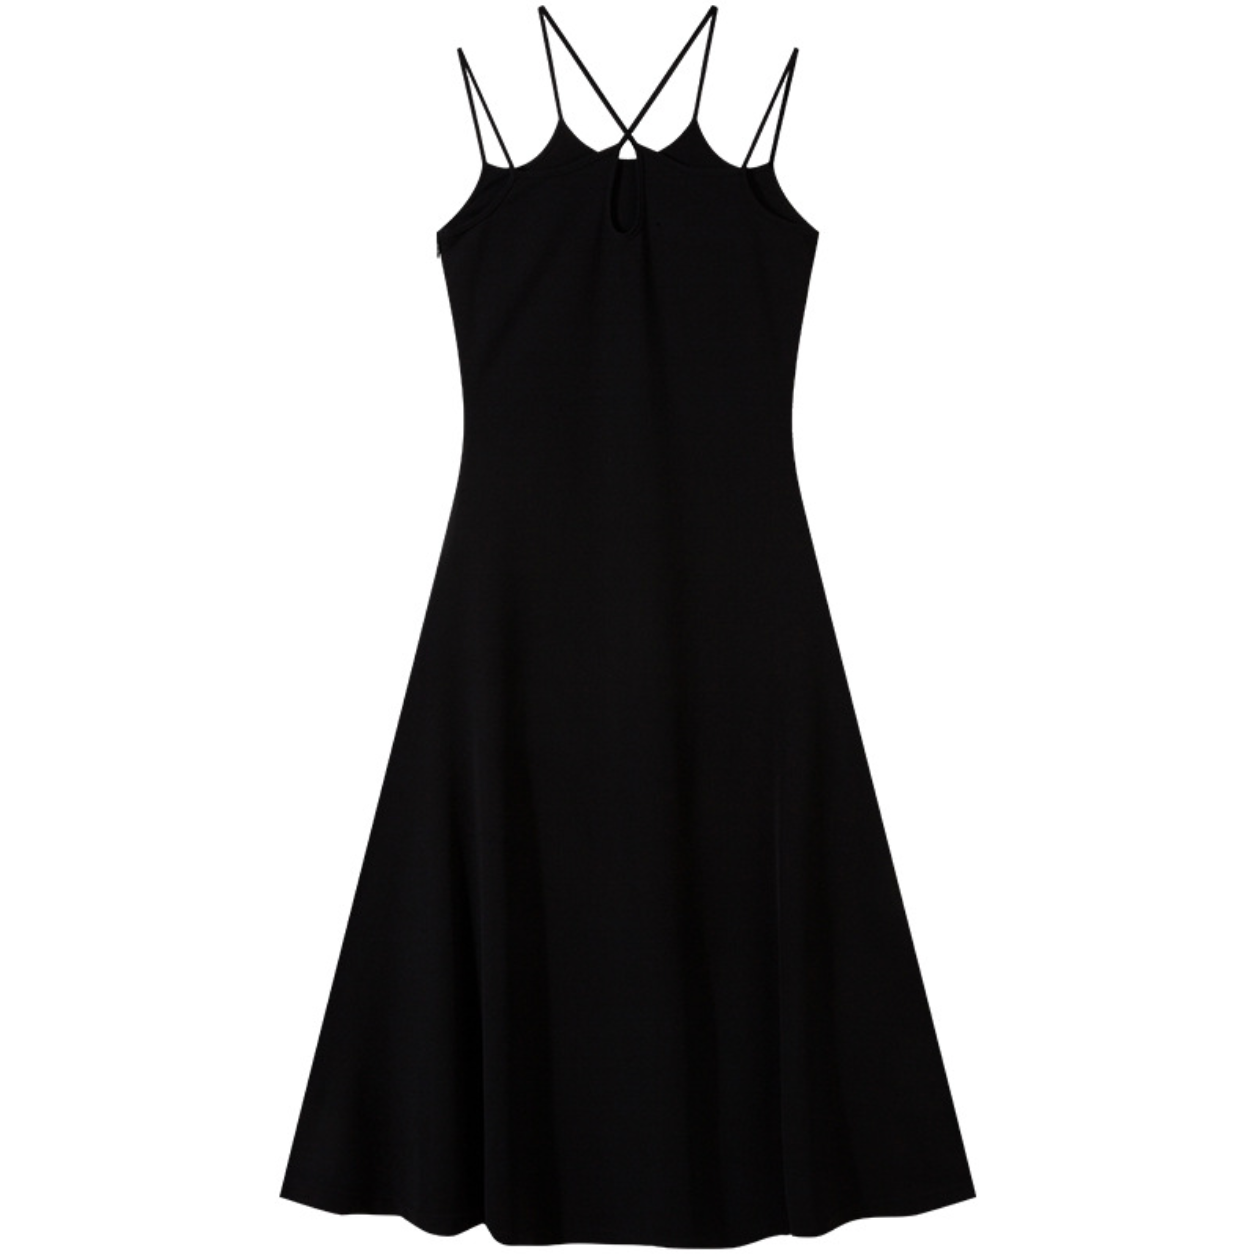 Sexy Black V Neckline Sleeveless Strappy Detailing Midi Dress